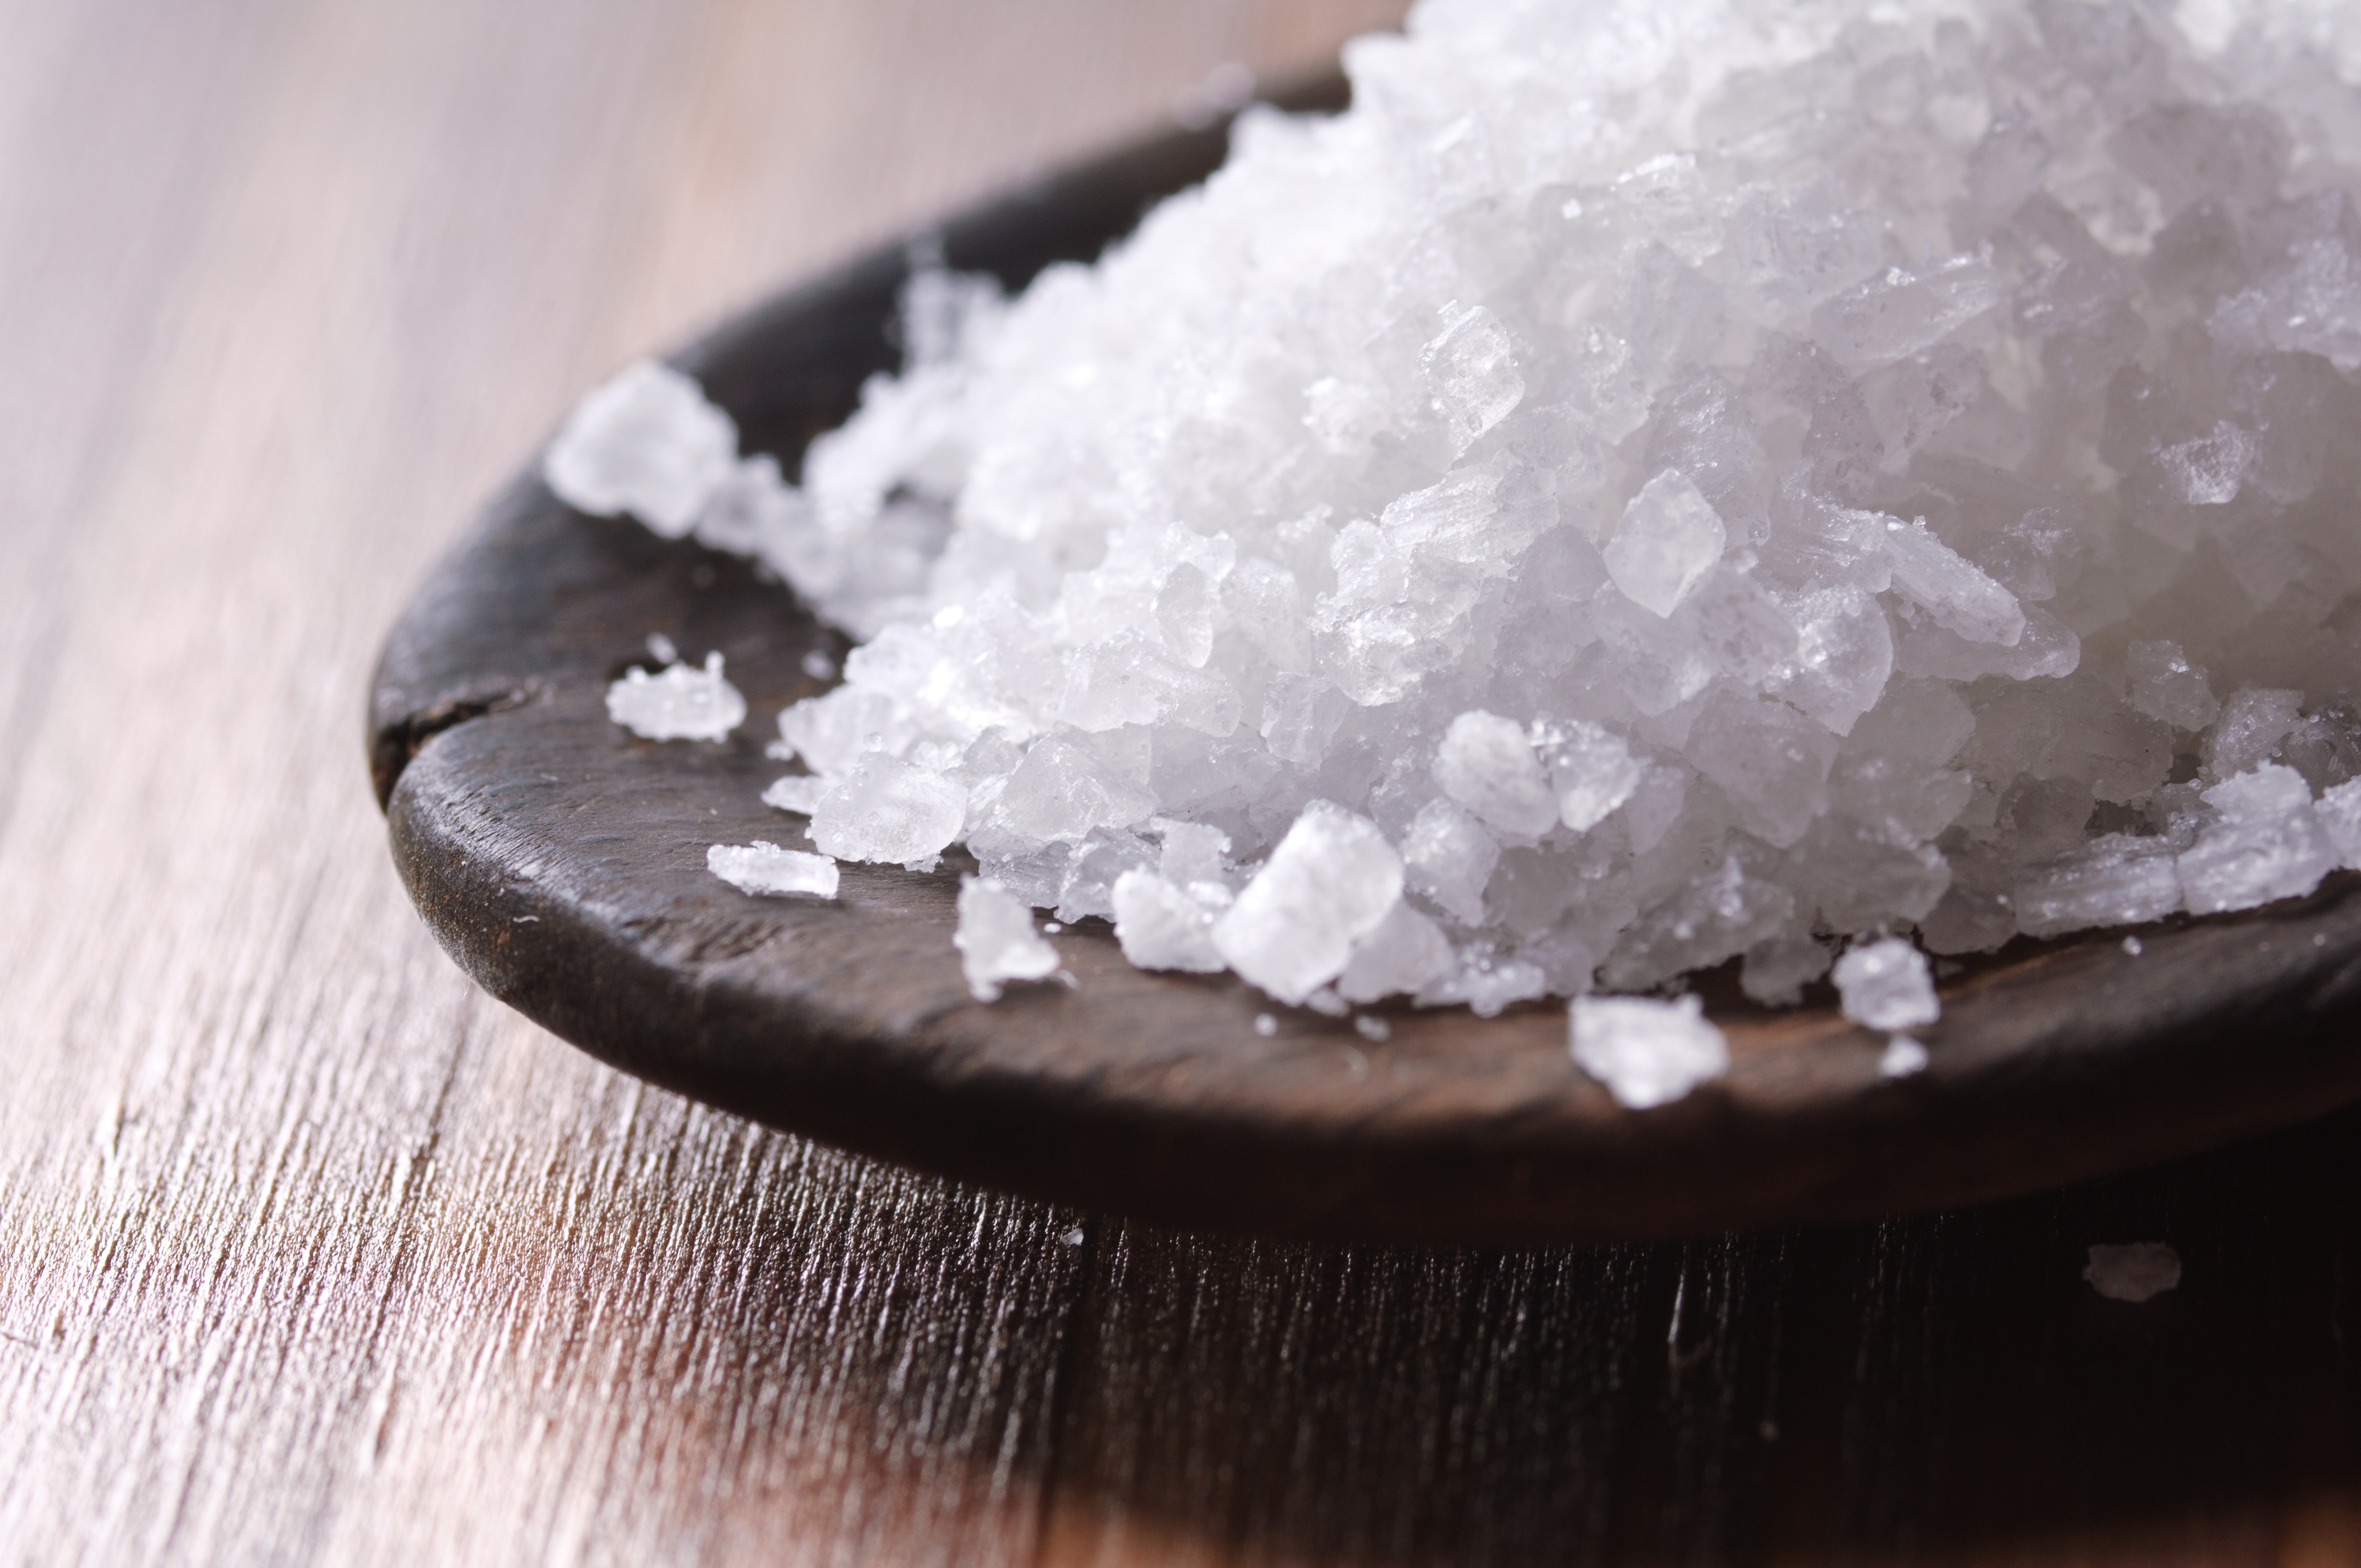 Luxury salt? It's not that crazy when you think about it...